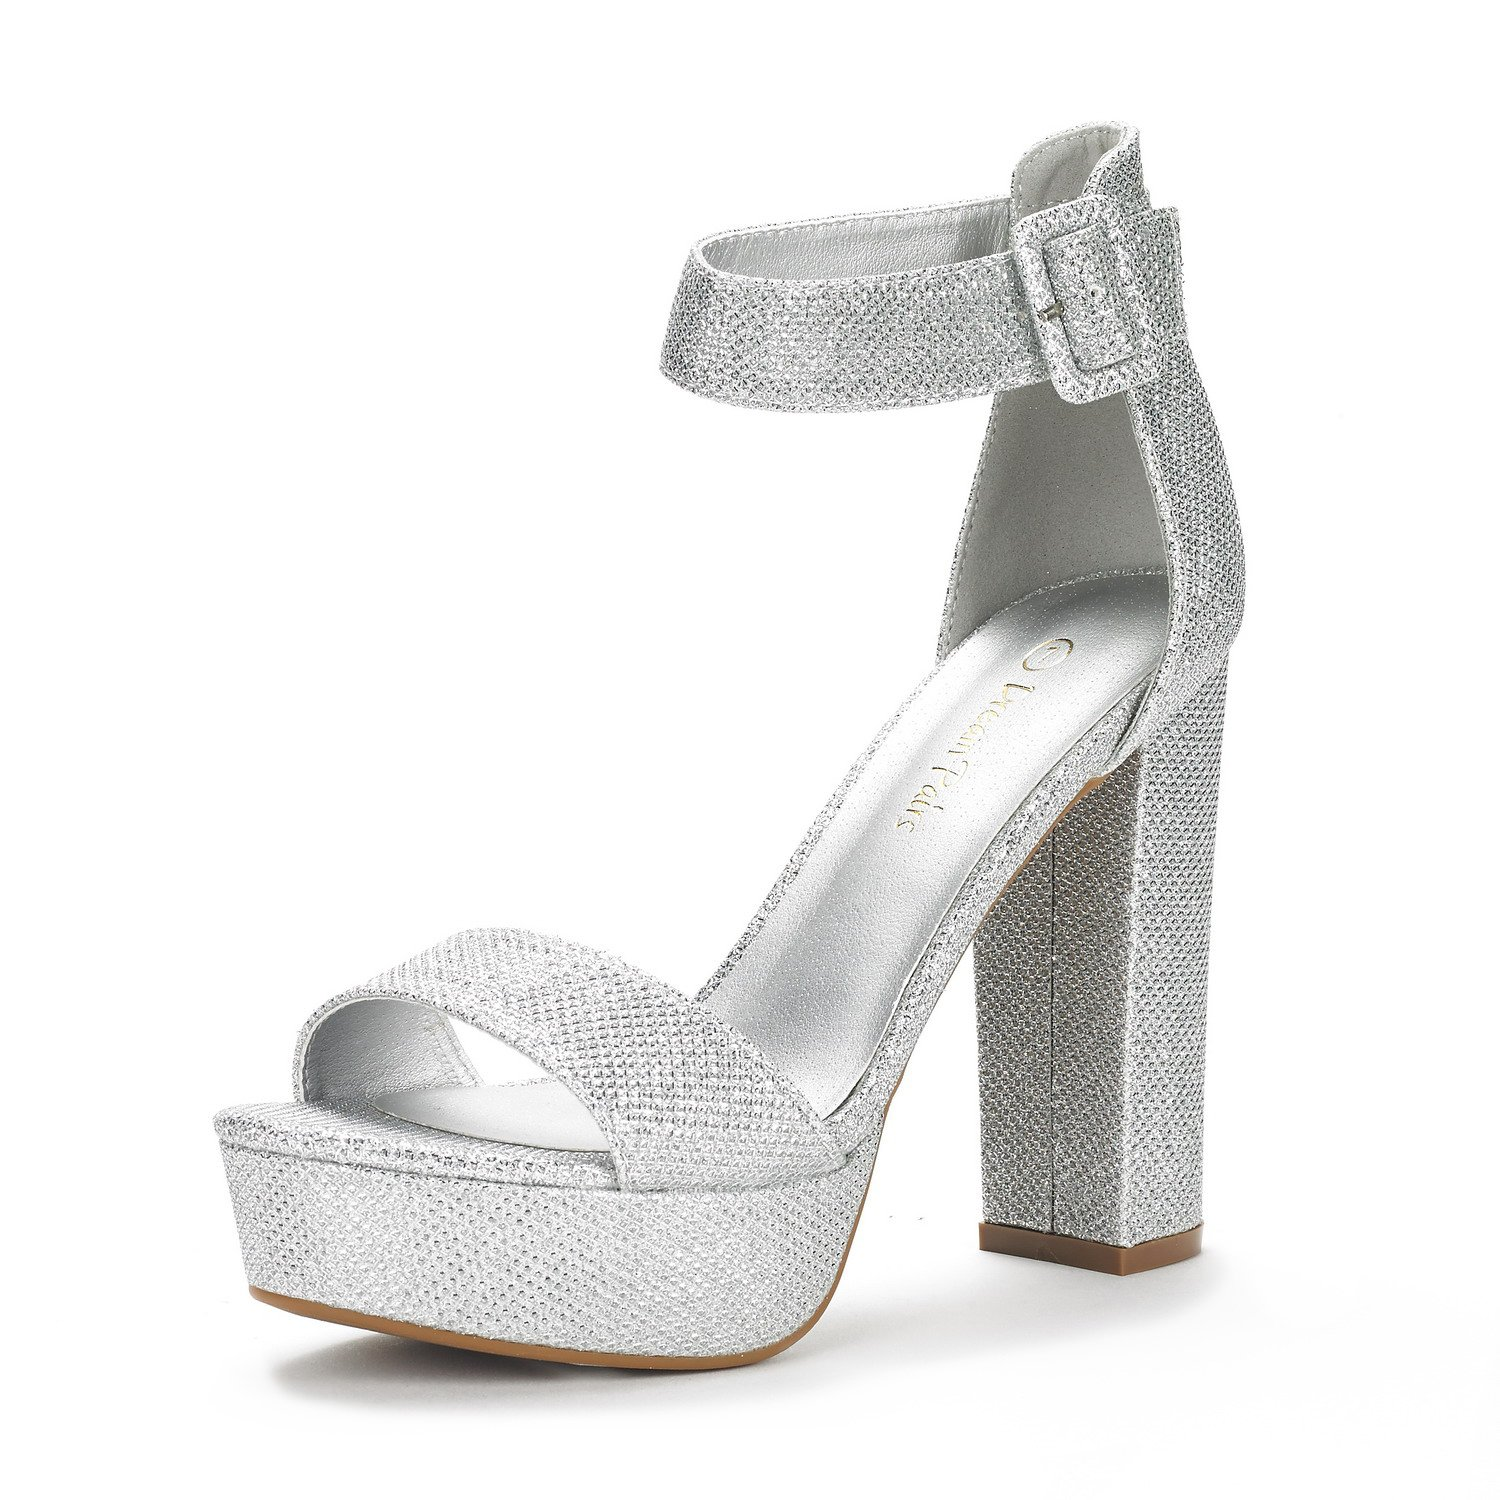 DREAM PAIRS Women's Hi-Lo Silver Glitter High Heel Platform Pump Sandals - 7.5 M US